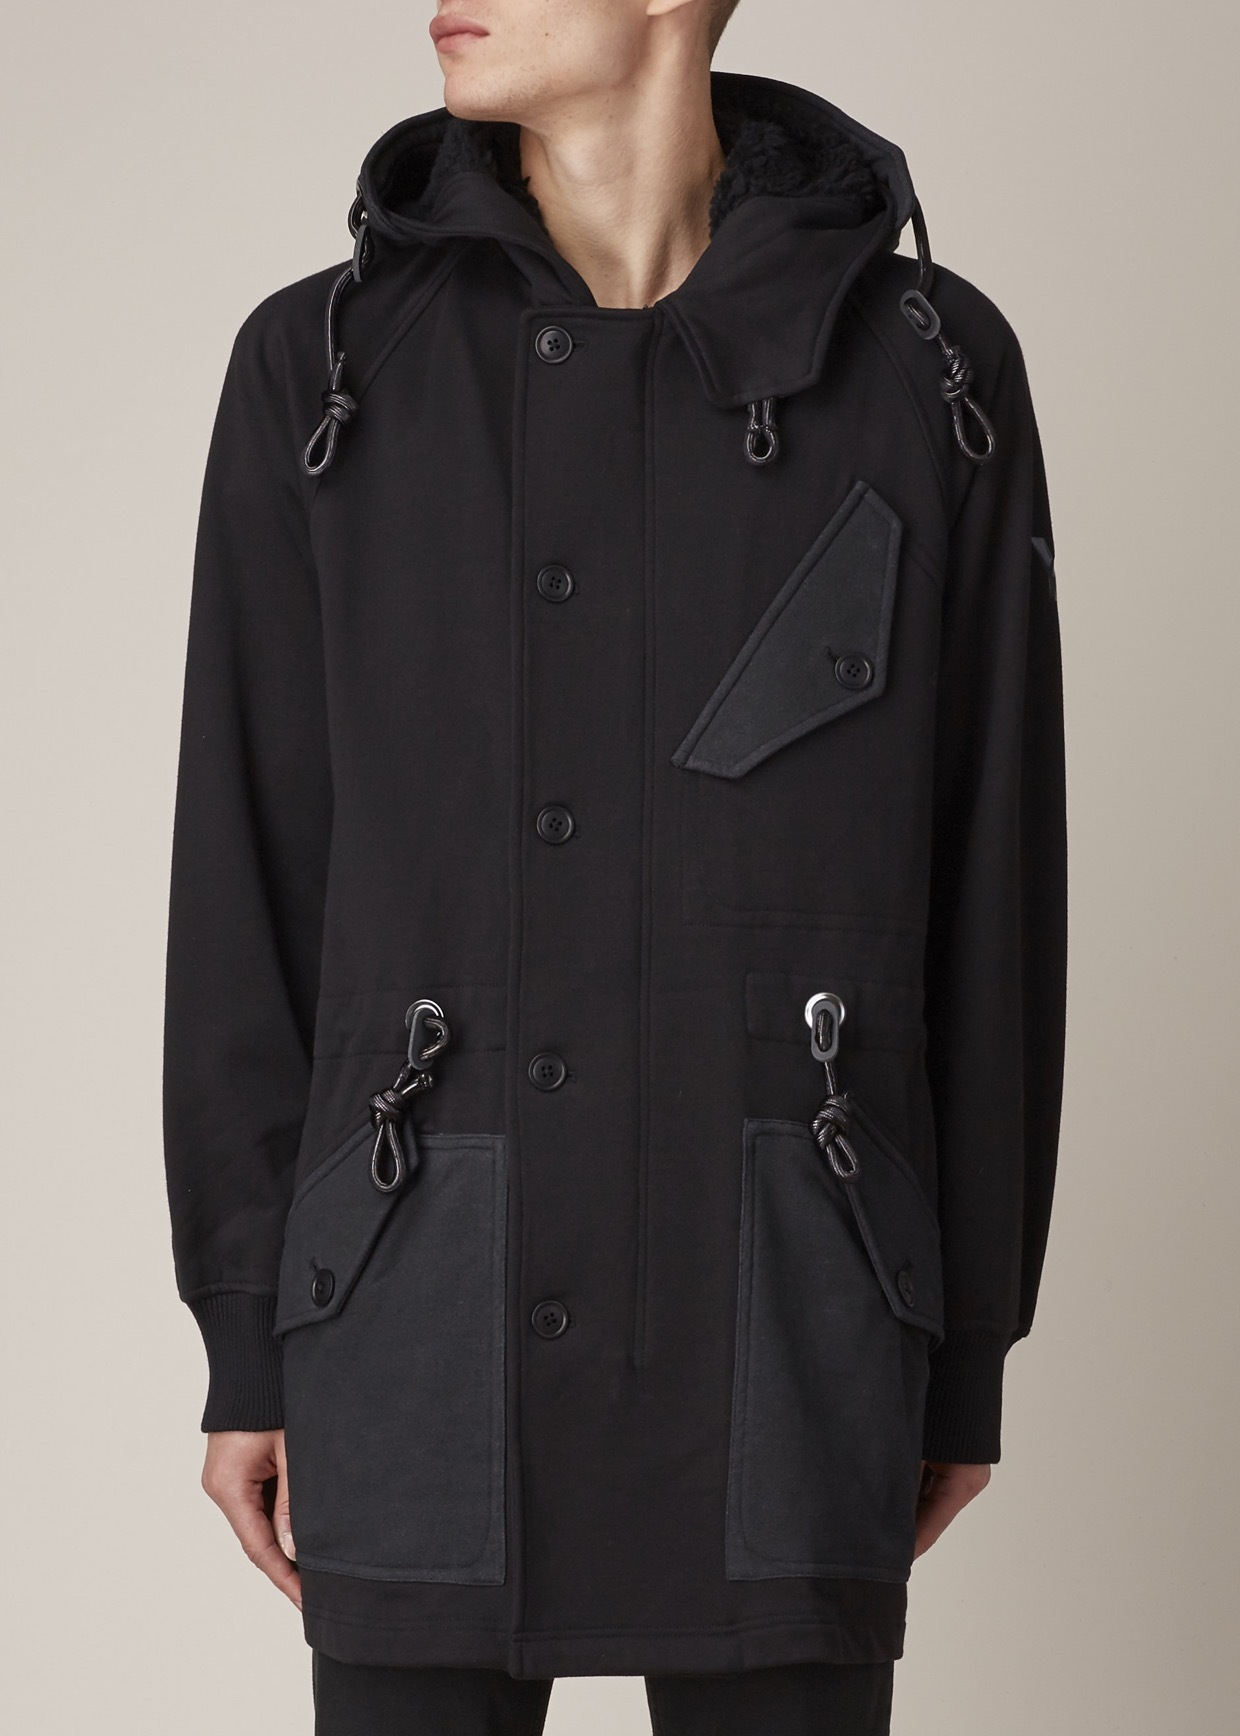 Y-3 Black Drawstring Parka in Black for Men | Lyst